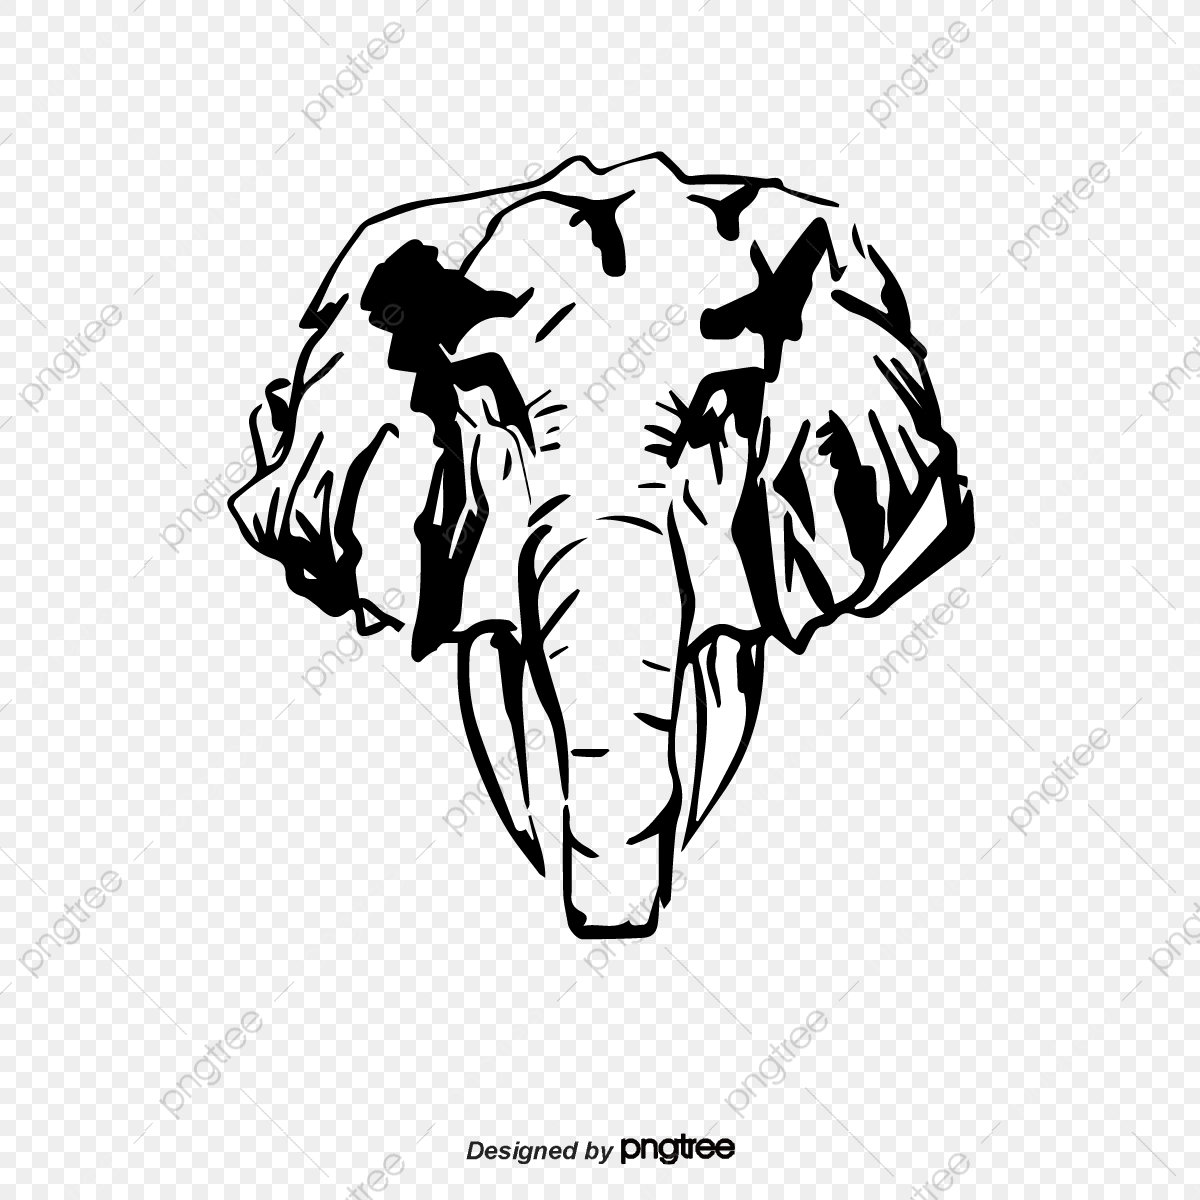 Elephant Head Png Images Vector And Psd Files Free Download On Pngtree When designing a new logo you can be inspired by the visual logos found here. https pngtree com freepng cartoon elephant head silhouette 3203854 html